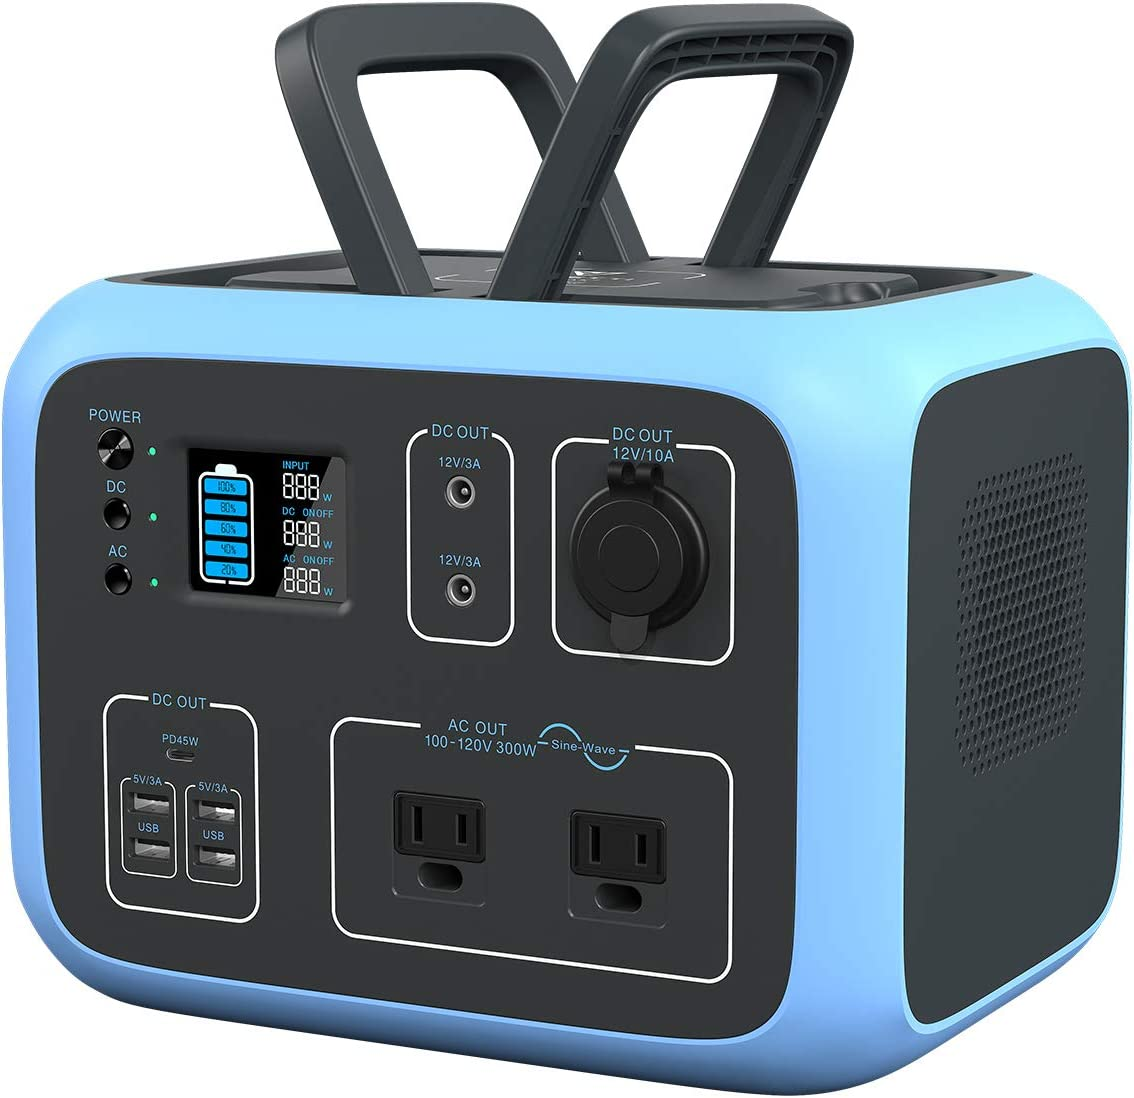 Buy MAXOAK Portable Power Station 500Wh BLUETTI AC50S Solar Generator  Lithium Battery Backup for Outdoor Camping Van Trip (Regulated  12V,MPPT,Wireless Charging,PD 45W USB-C,,2AC Pure Sine-Wave Outlets) Online  in Indonesia. B08L91TTC9